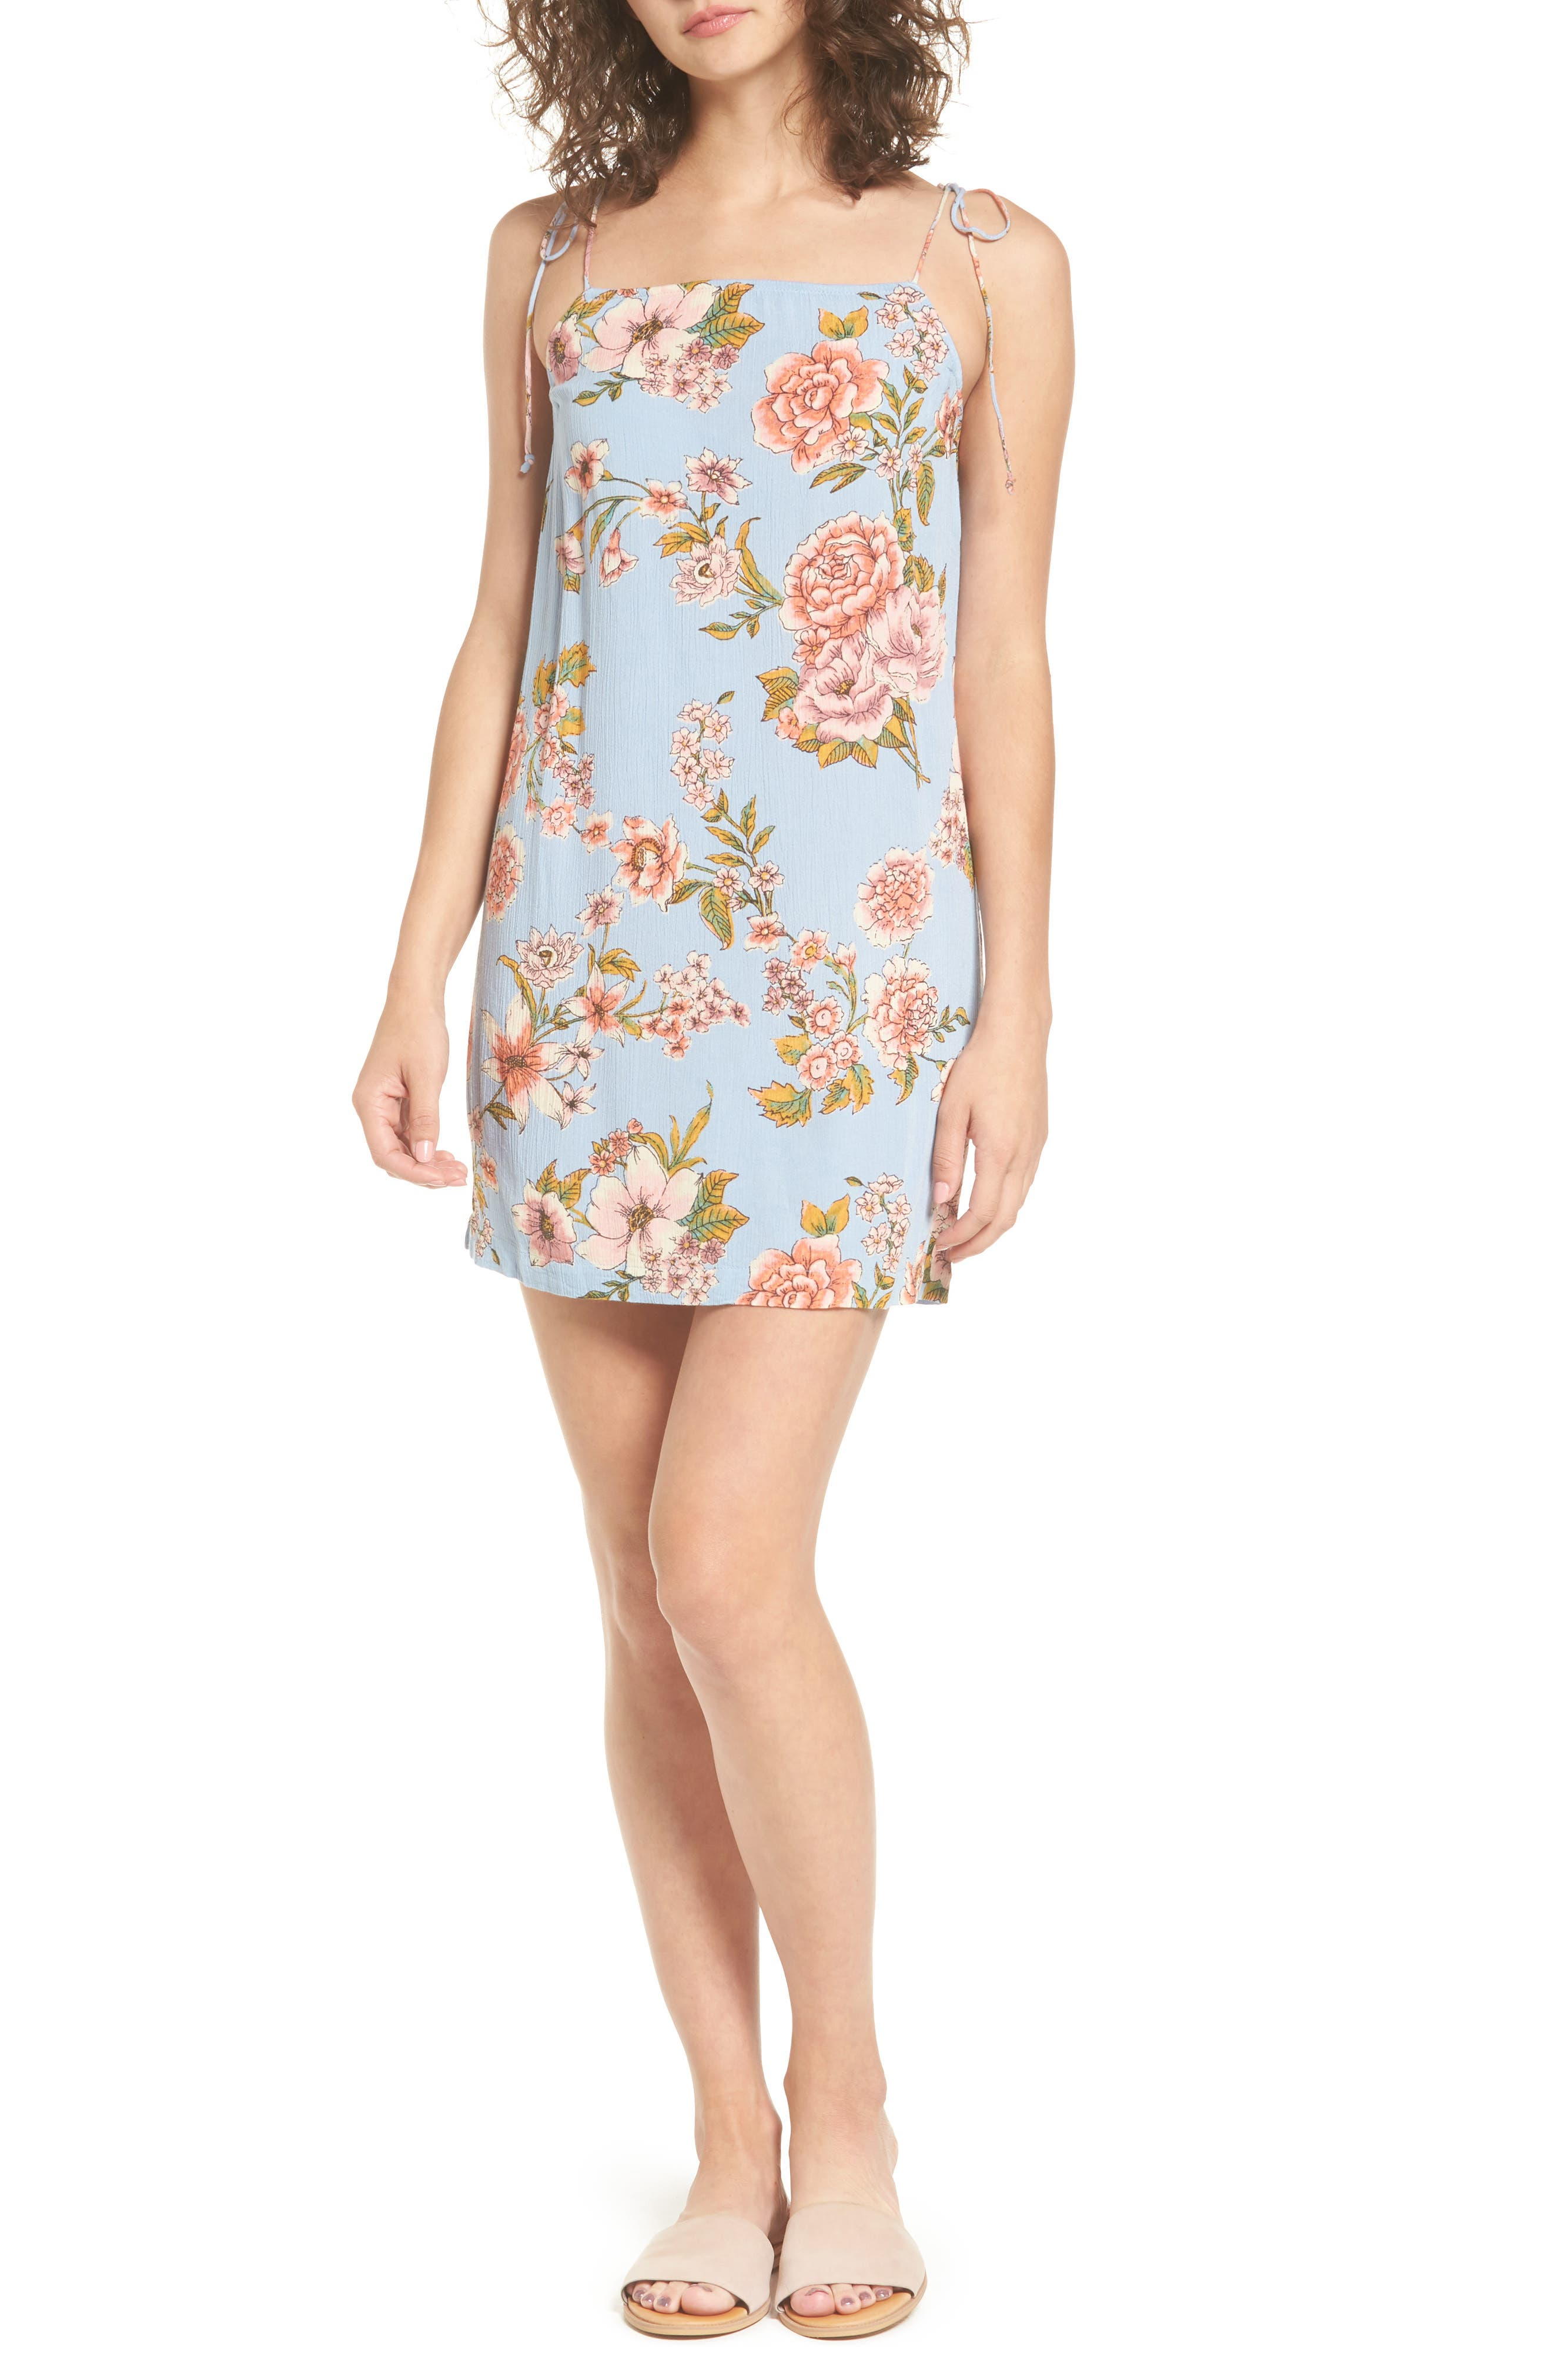 Main Image - Billabong Night Out Floral Camisole Dress